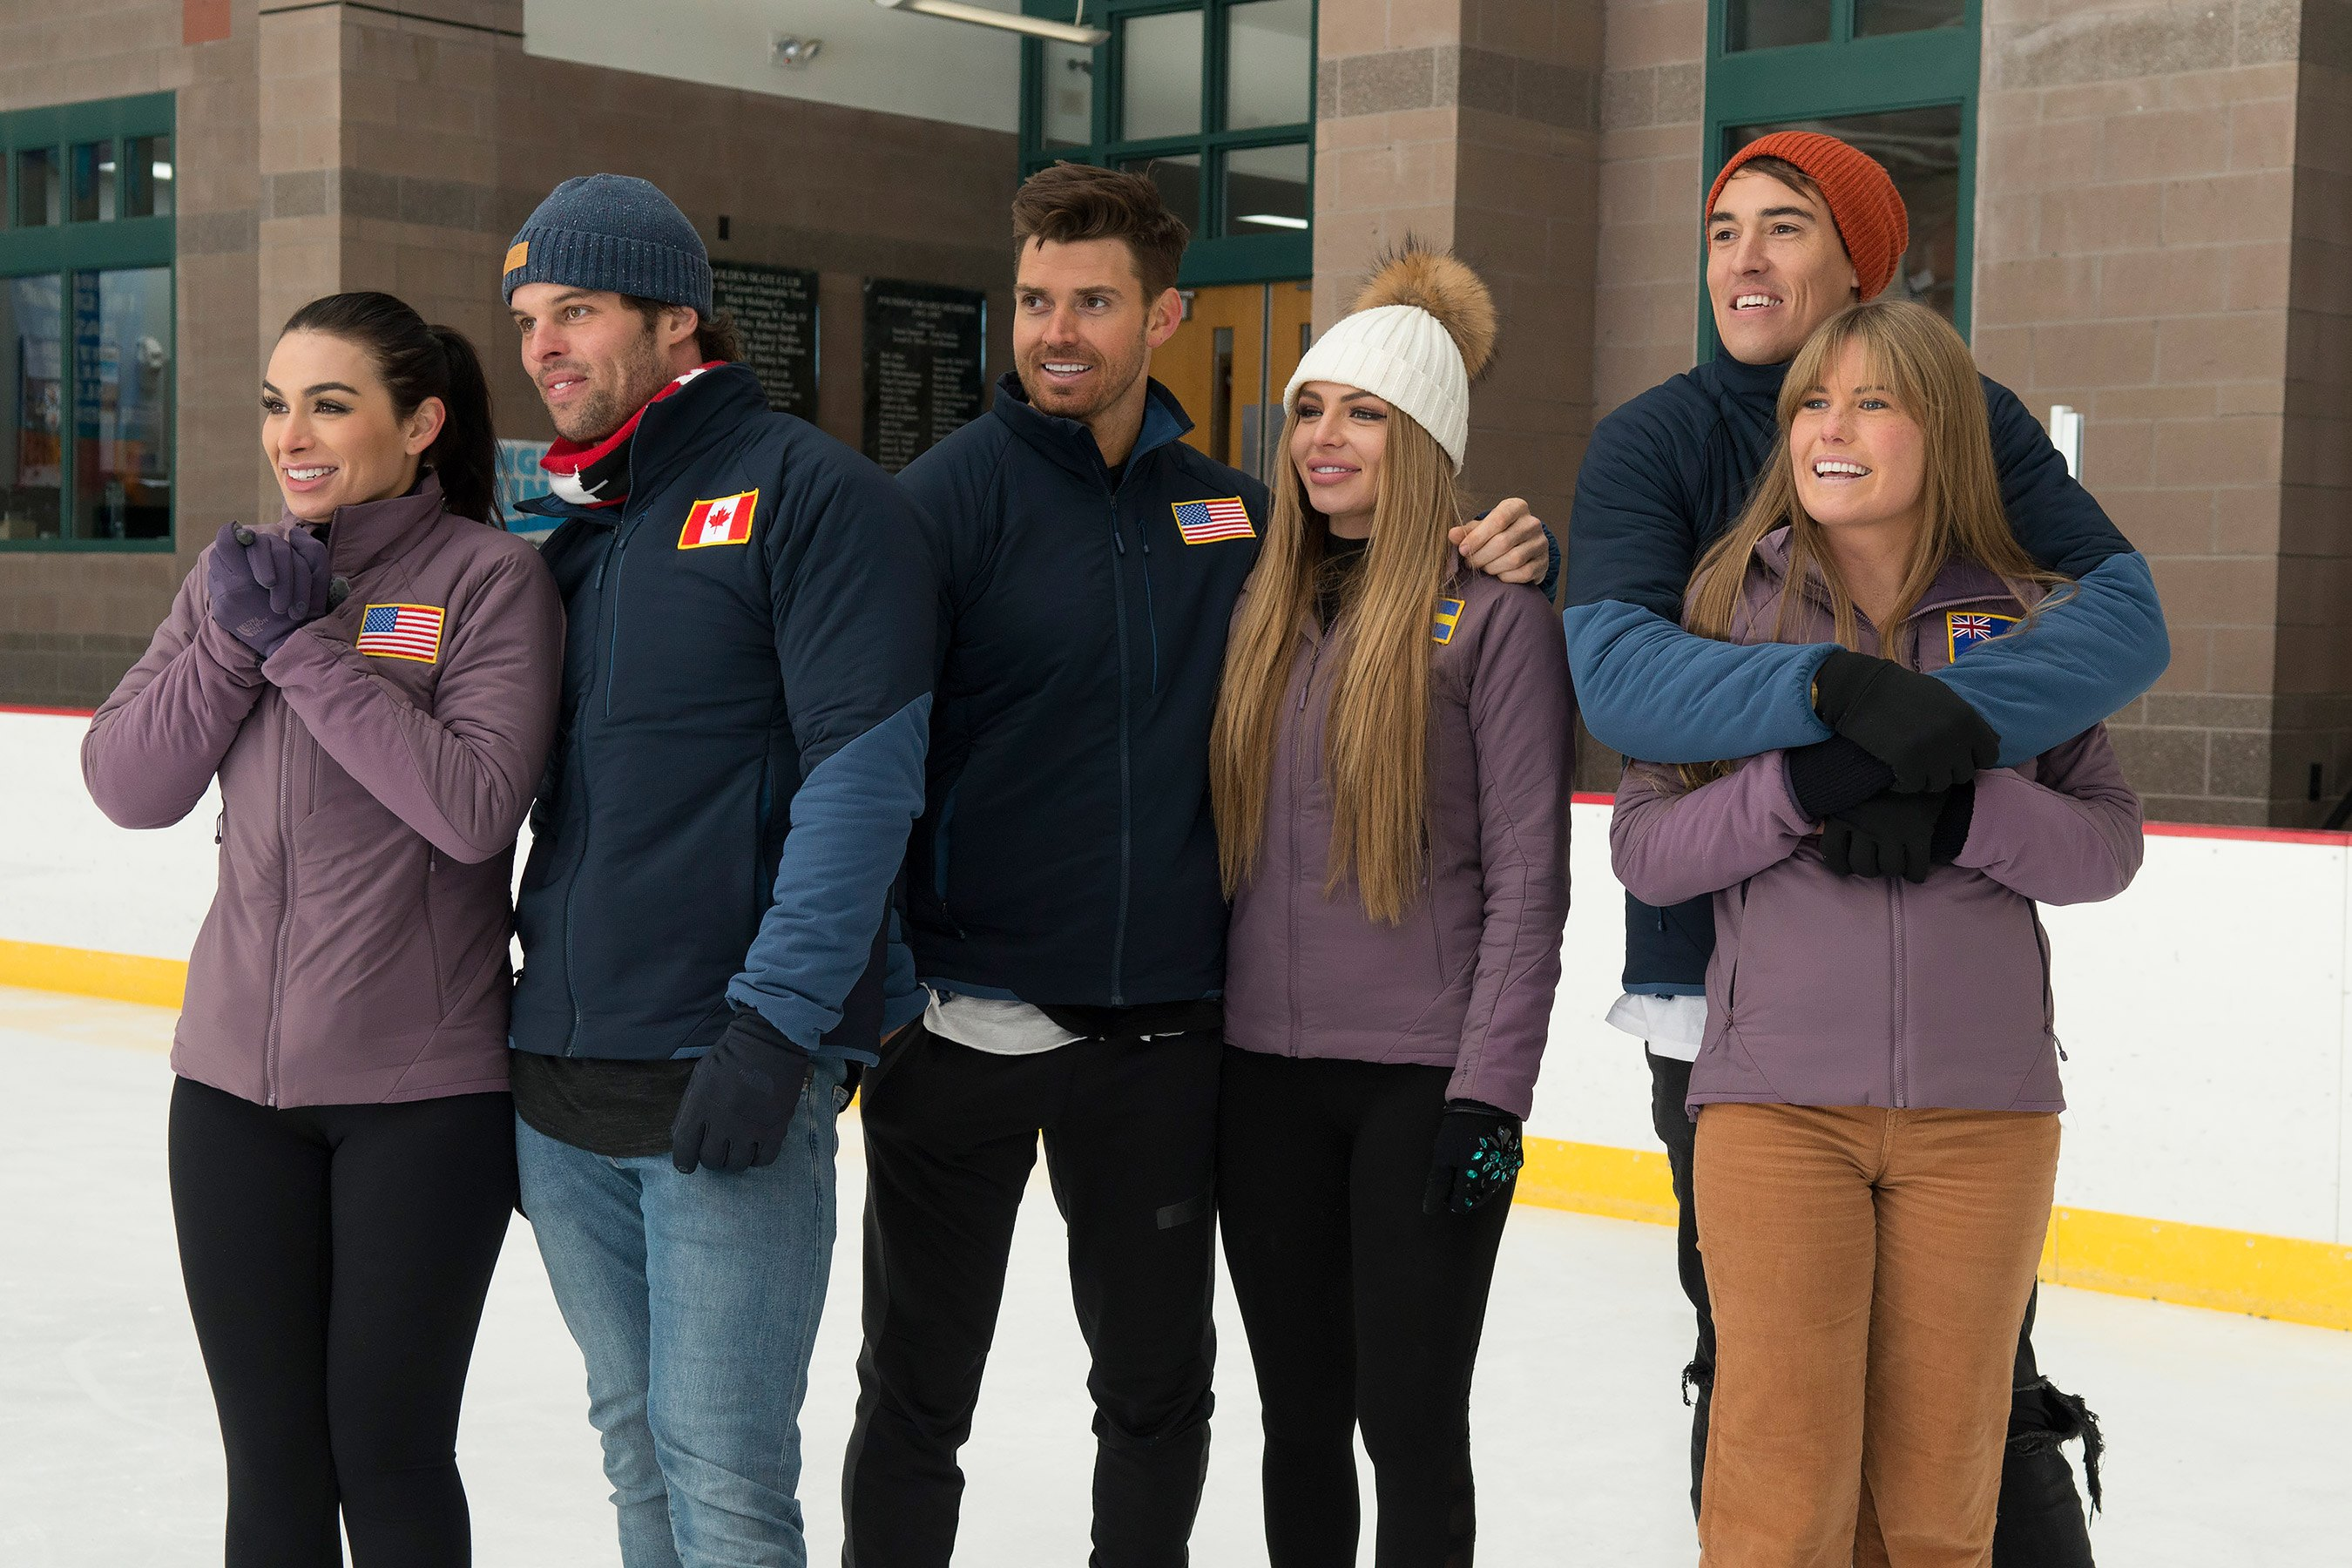 """THE BACHELOR WINTER GAMES - """"Episode 104"""" -It's the final countdown for the remaining couples who will face off in the final event – Couples Ice Dancing. As this journey comes to an end, feelings grow deeper and bonds become stronger on the season finale of """"The Bachelor Winter Games,"""" airing THURSDAY, FEB. 22 (8:00-10:00 p.m. EST), on The ABC Television Network. (ABC/Lorenzo Bevilaqua)"""